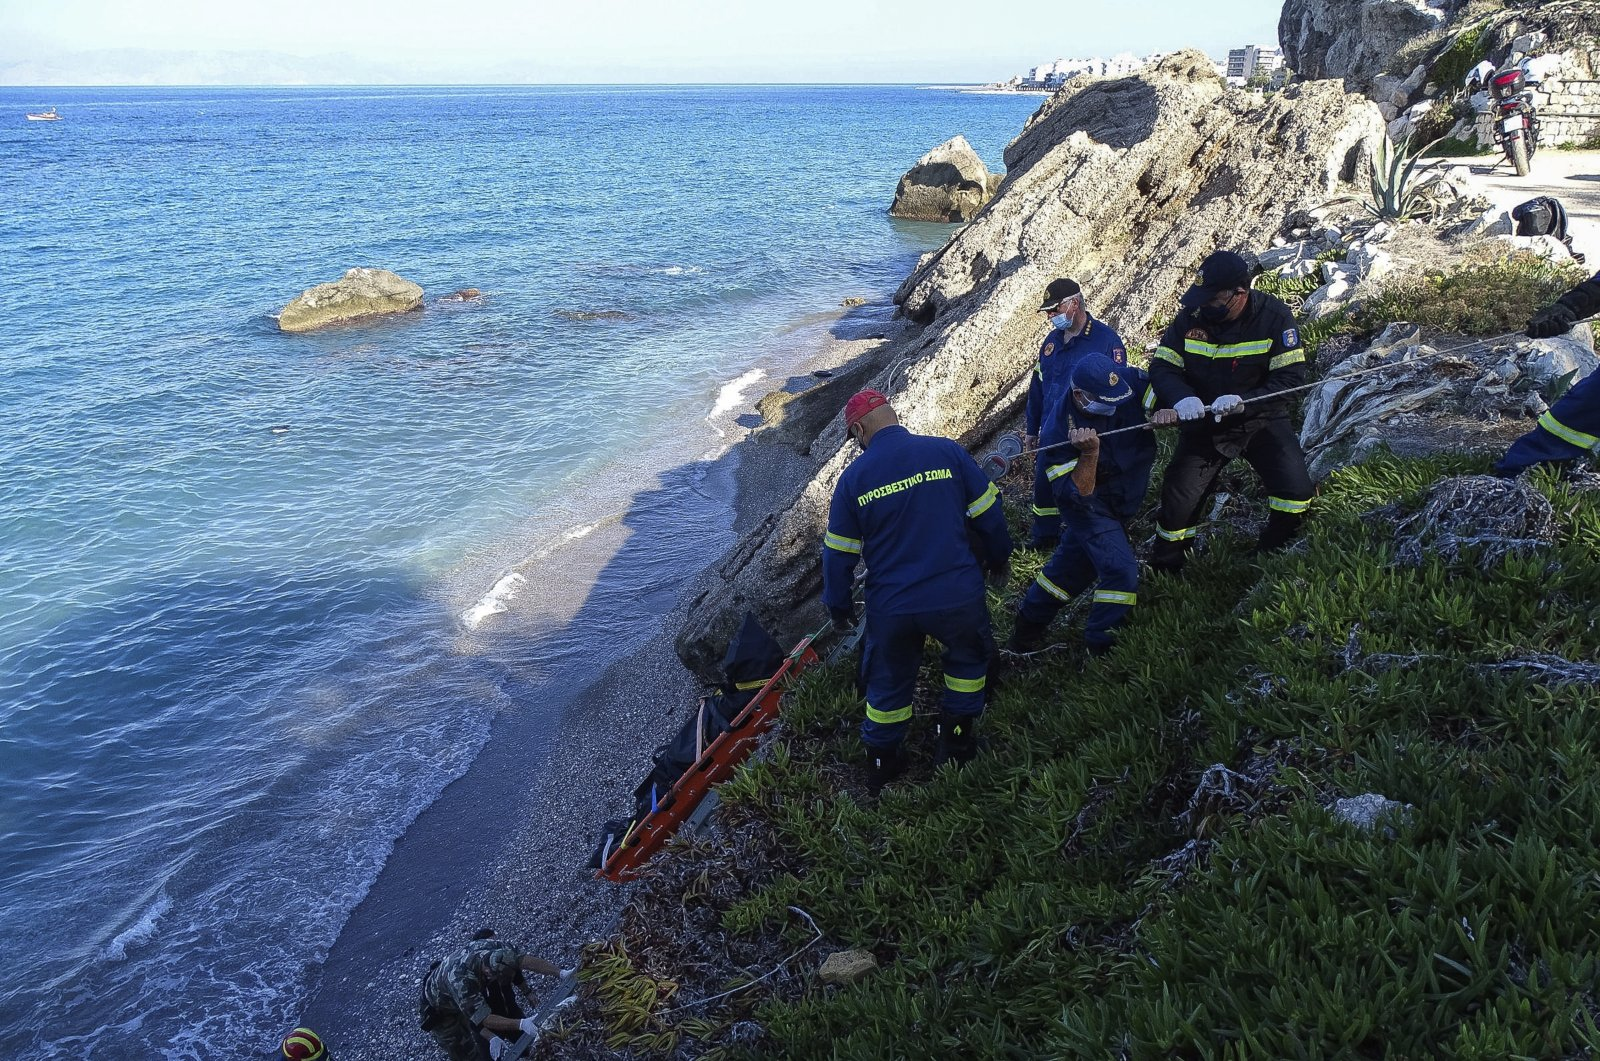 Firefighters retrieve the body of a migrant from the beach after a shipwreck on the island of Rhodes, southeastern Greece, Nov. 23, 2020. (AP Photo)